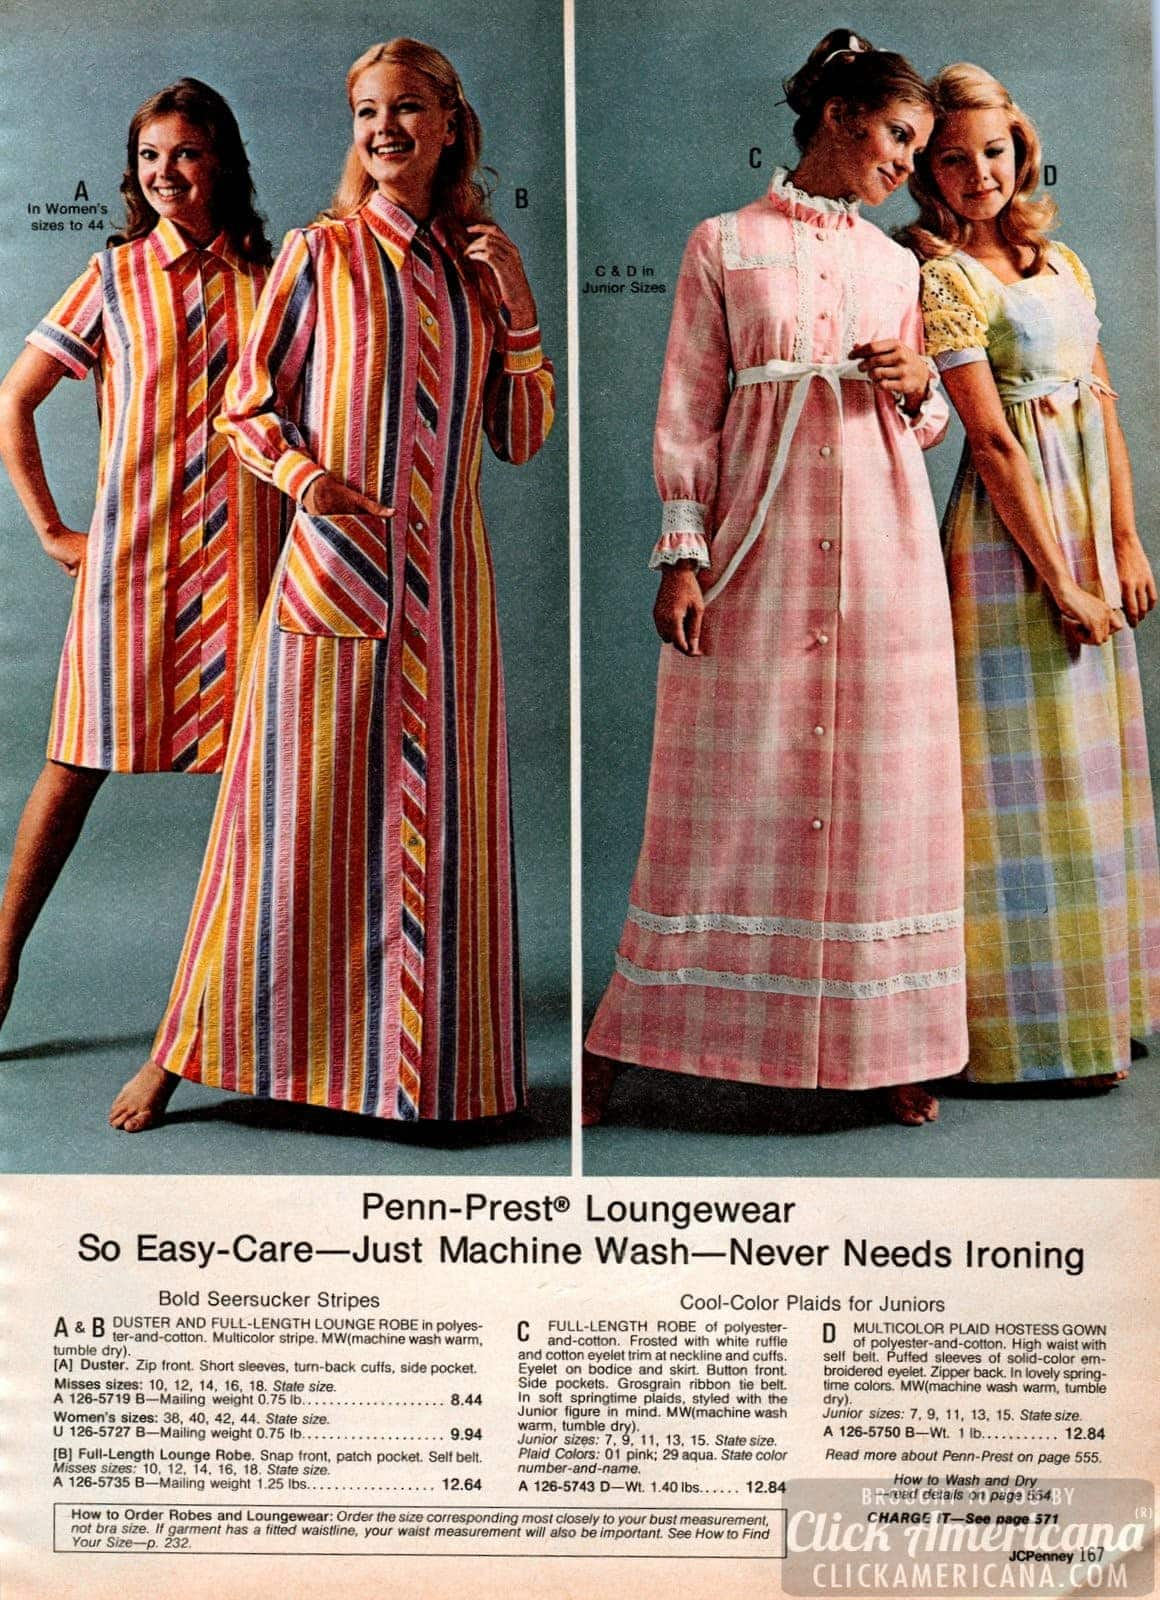 Retro 70s sleepwear for women (1)